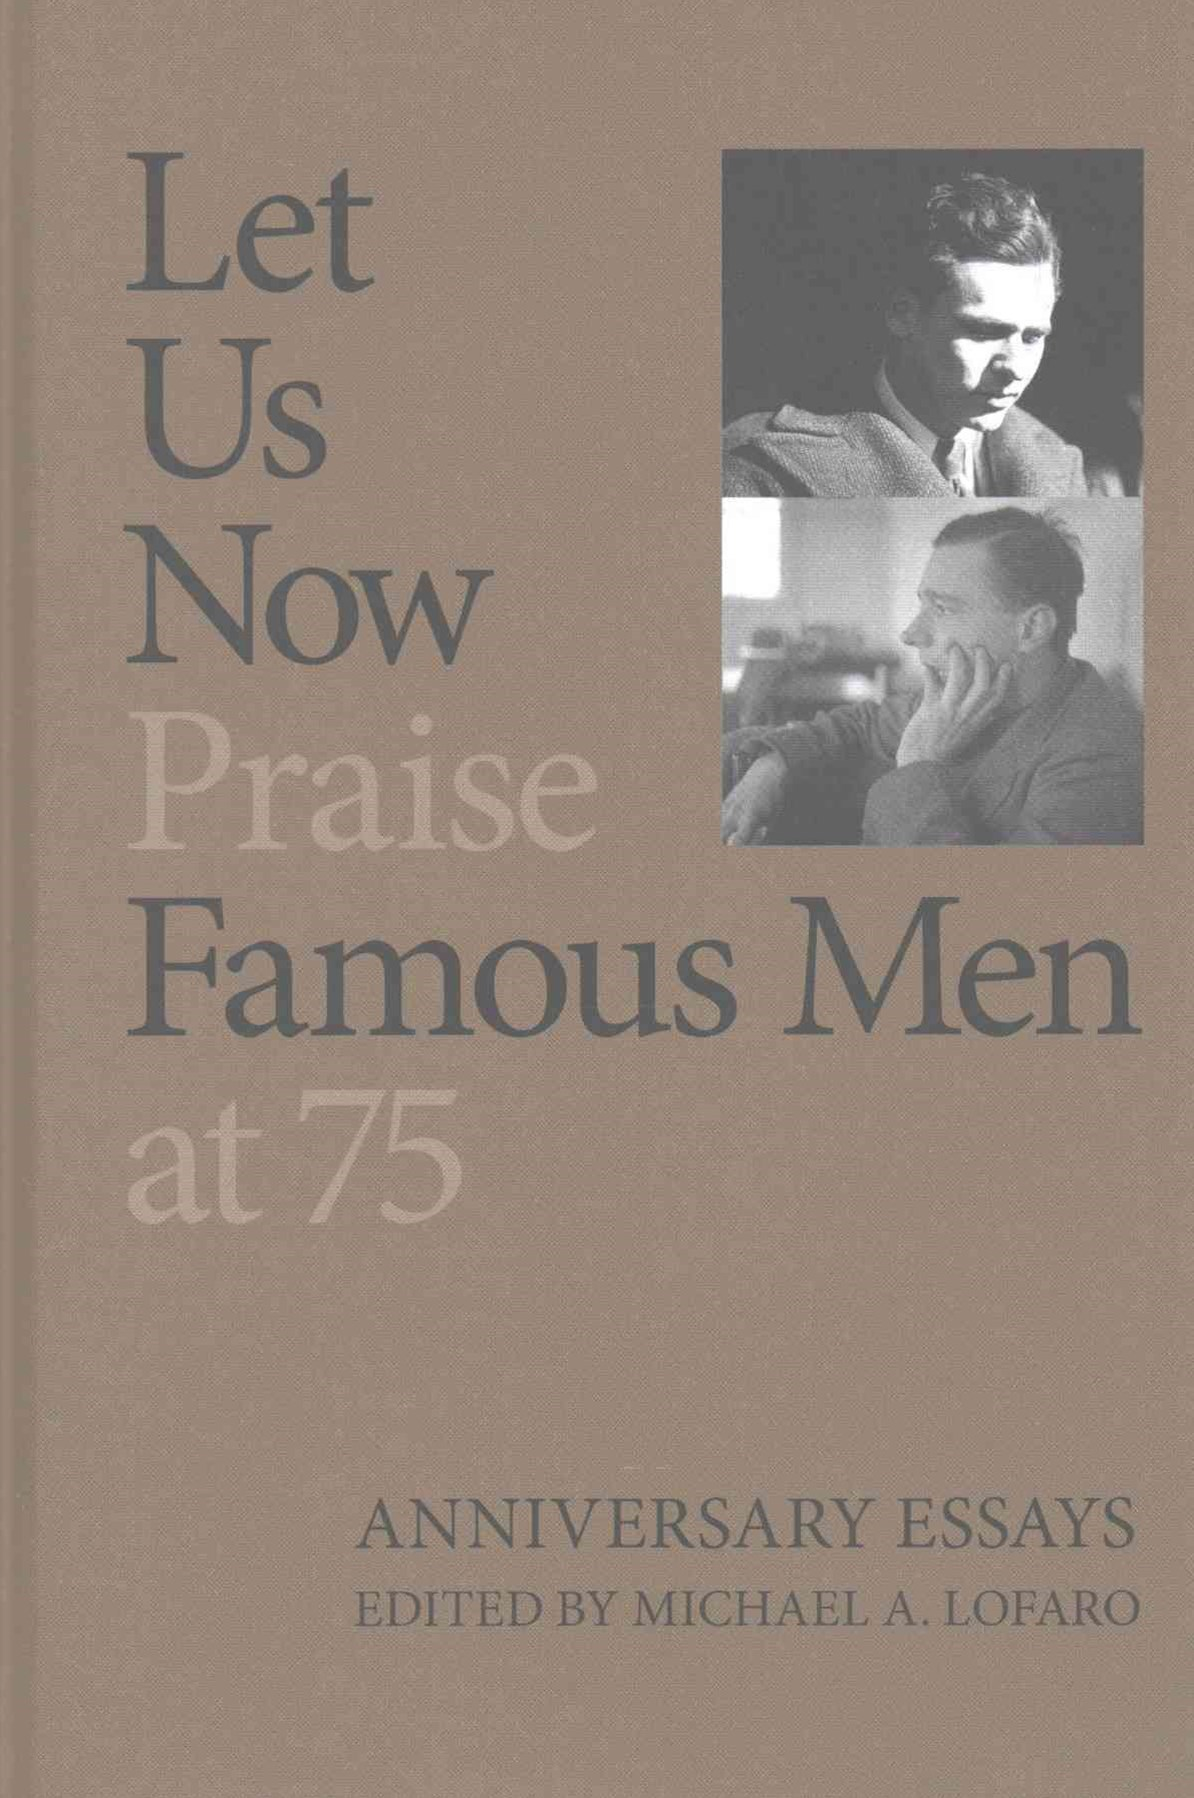 Let Us Now Praise Famous Men at 75